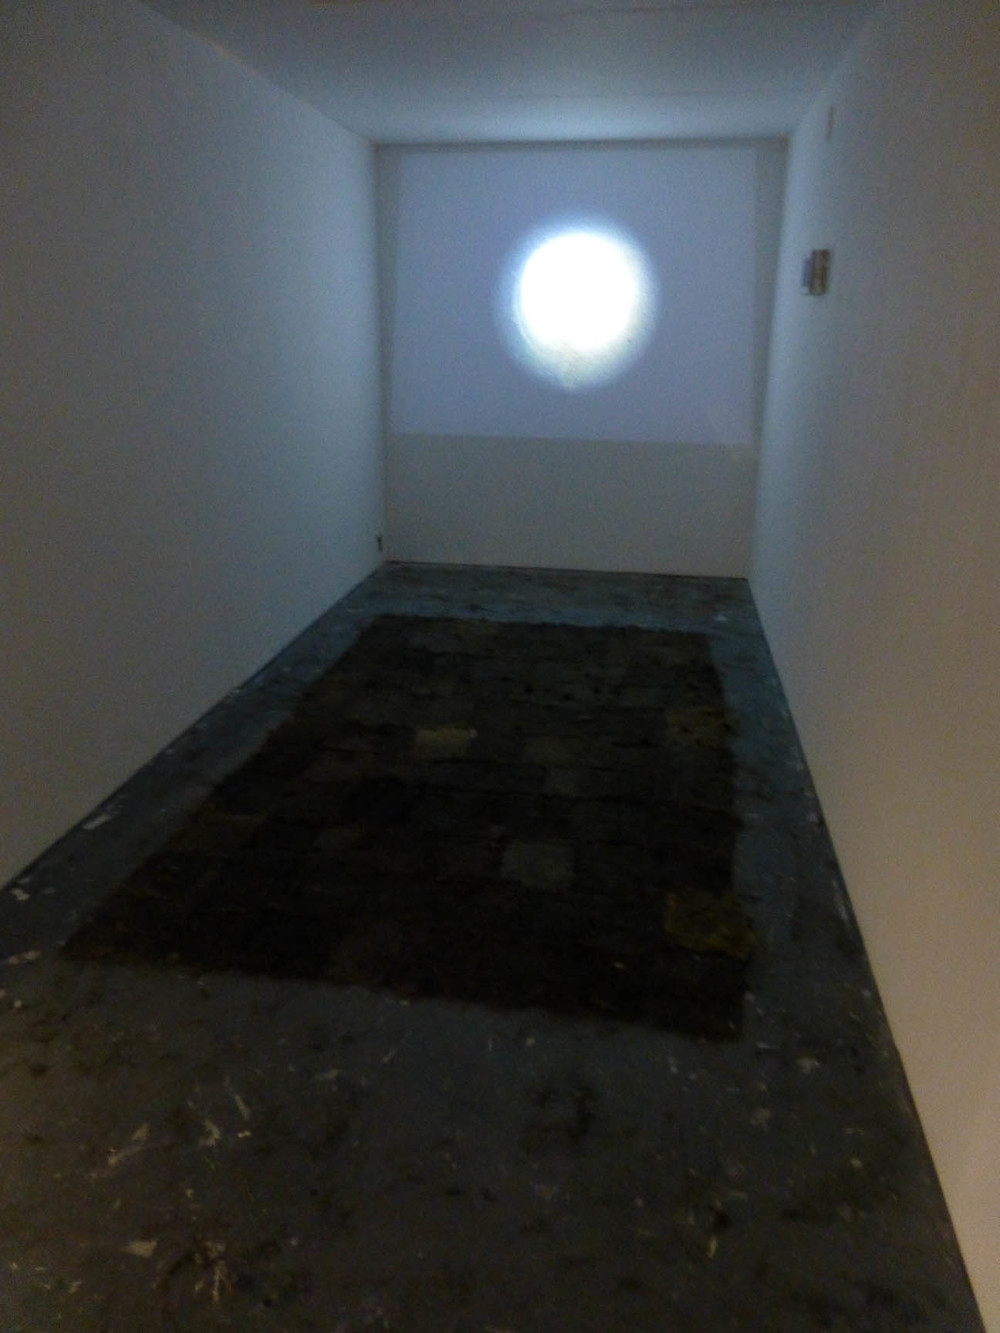 Lara Mumby-Croft. 2013. Transcending the Trivial exhibition space.